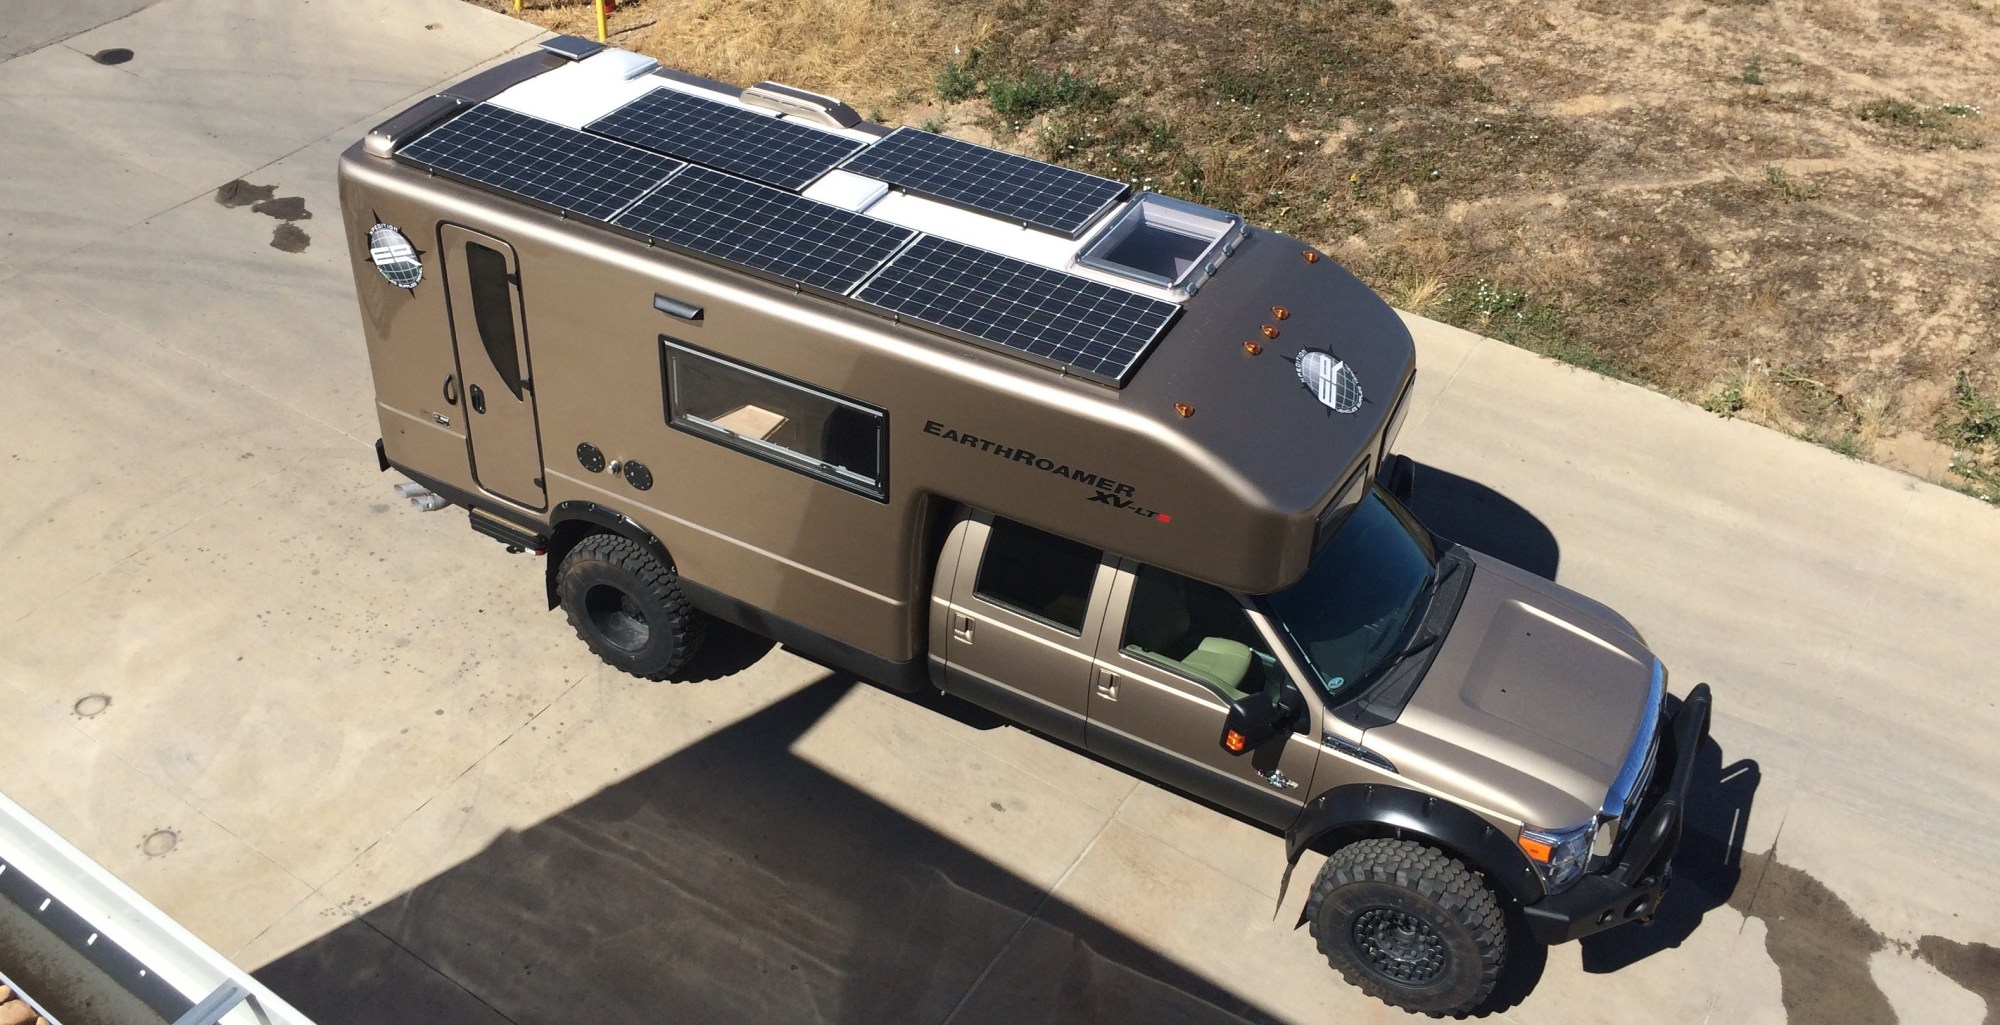 hight resolution of earthroamer a leader in off grid expedition vehicles provides a 3 000 watt solar